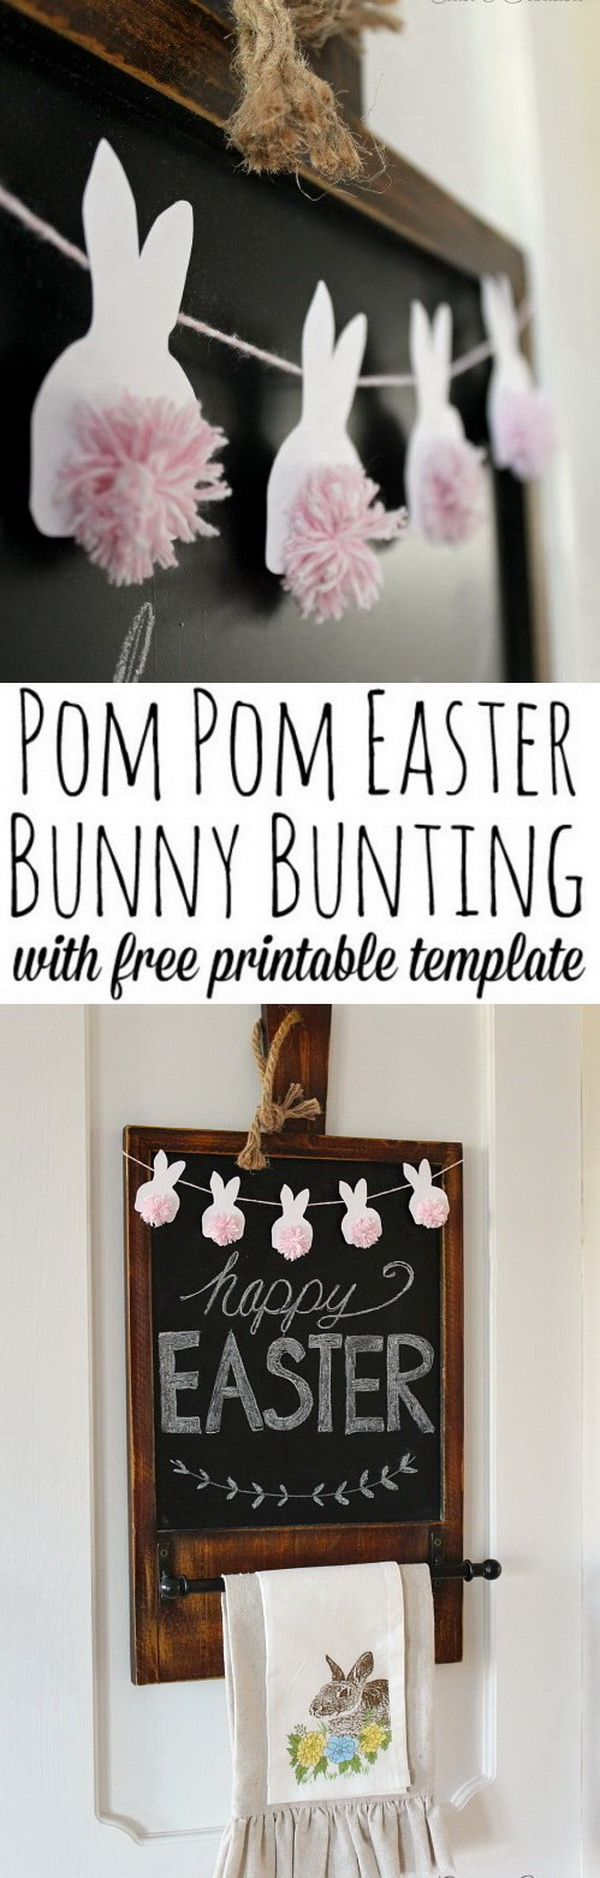 DIY Easter Decoration Ideas: Easter Bunting with Pom Pom Bunnies.